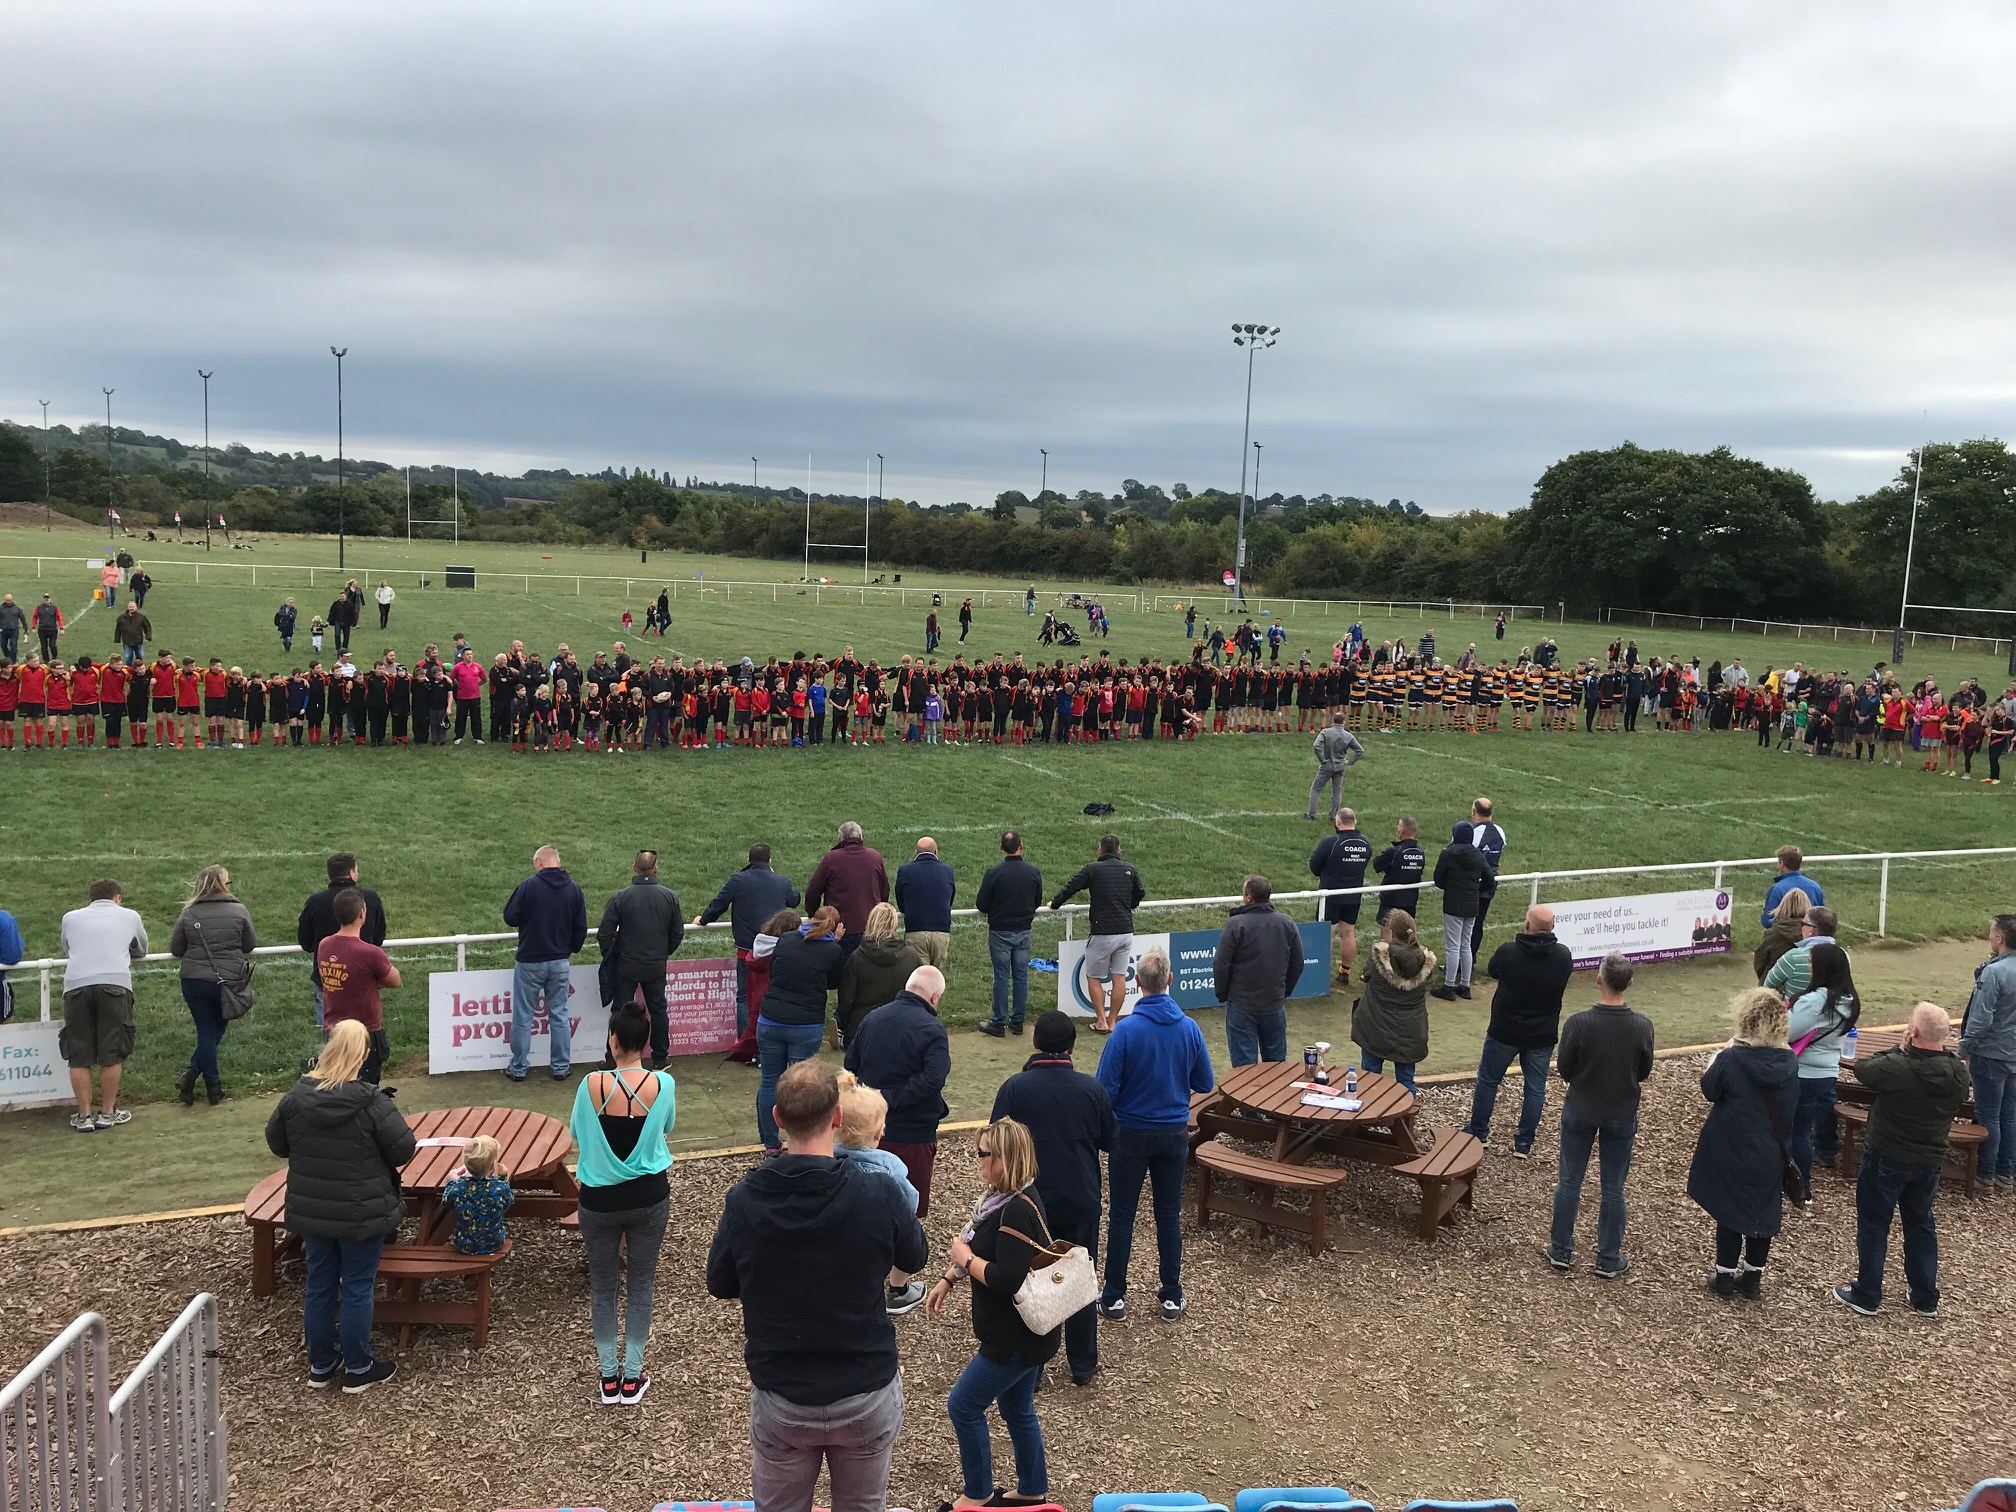 Kings Norton youth teams observe minute's silence for former president Chris Cooksey